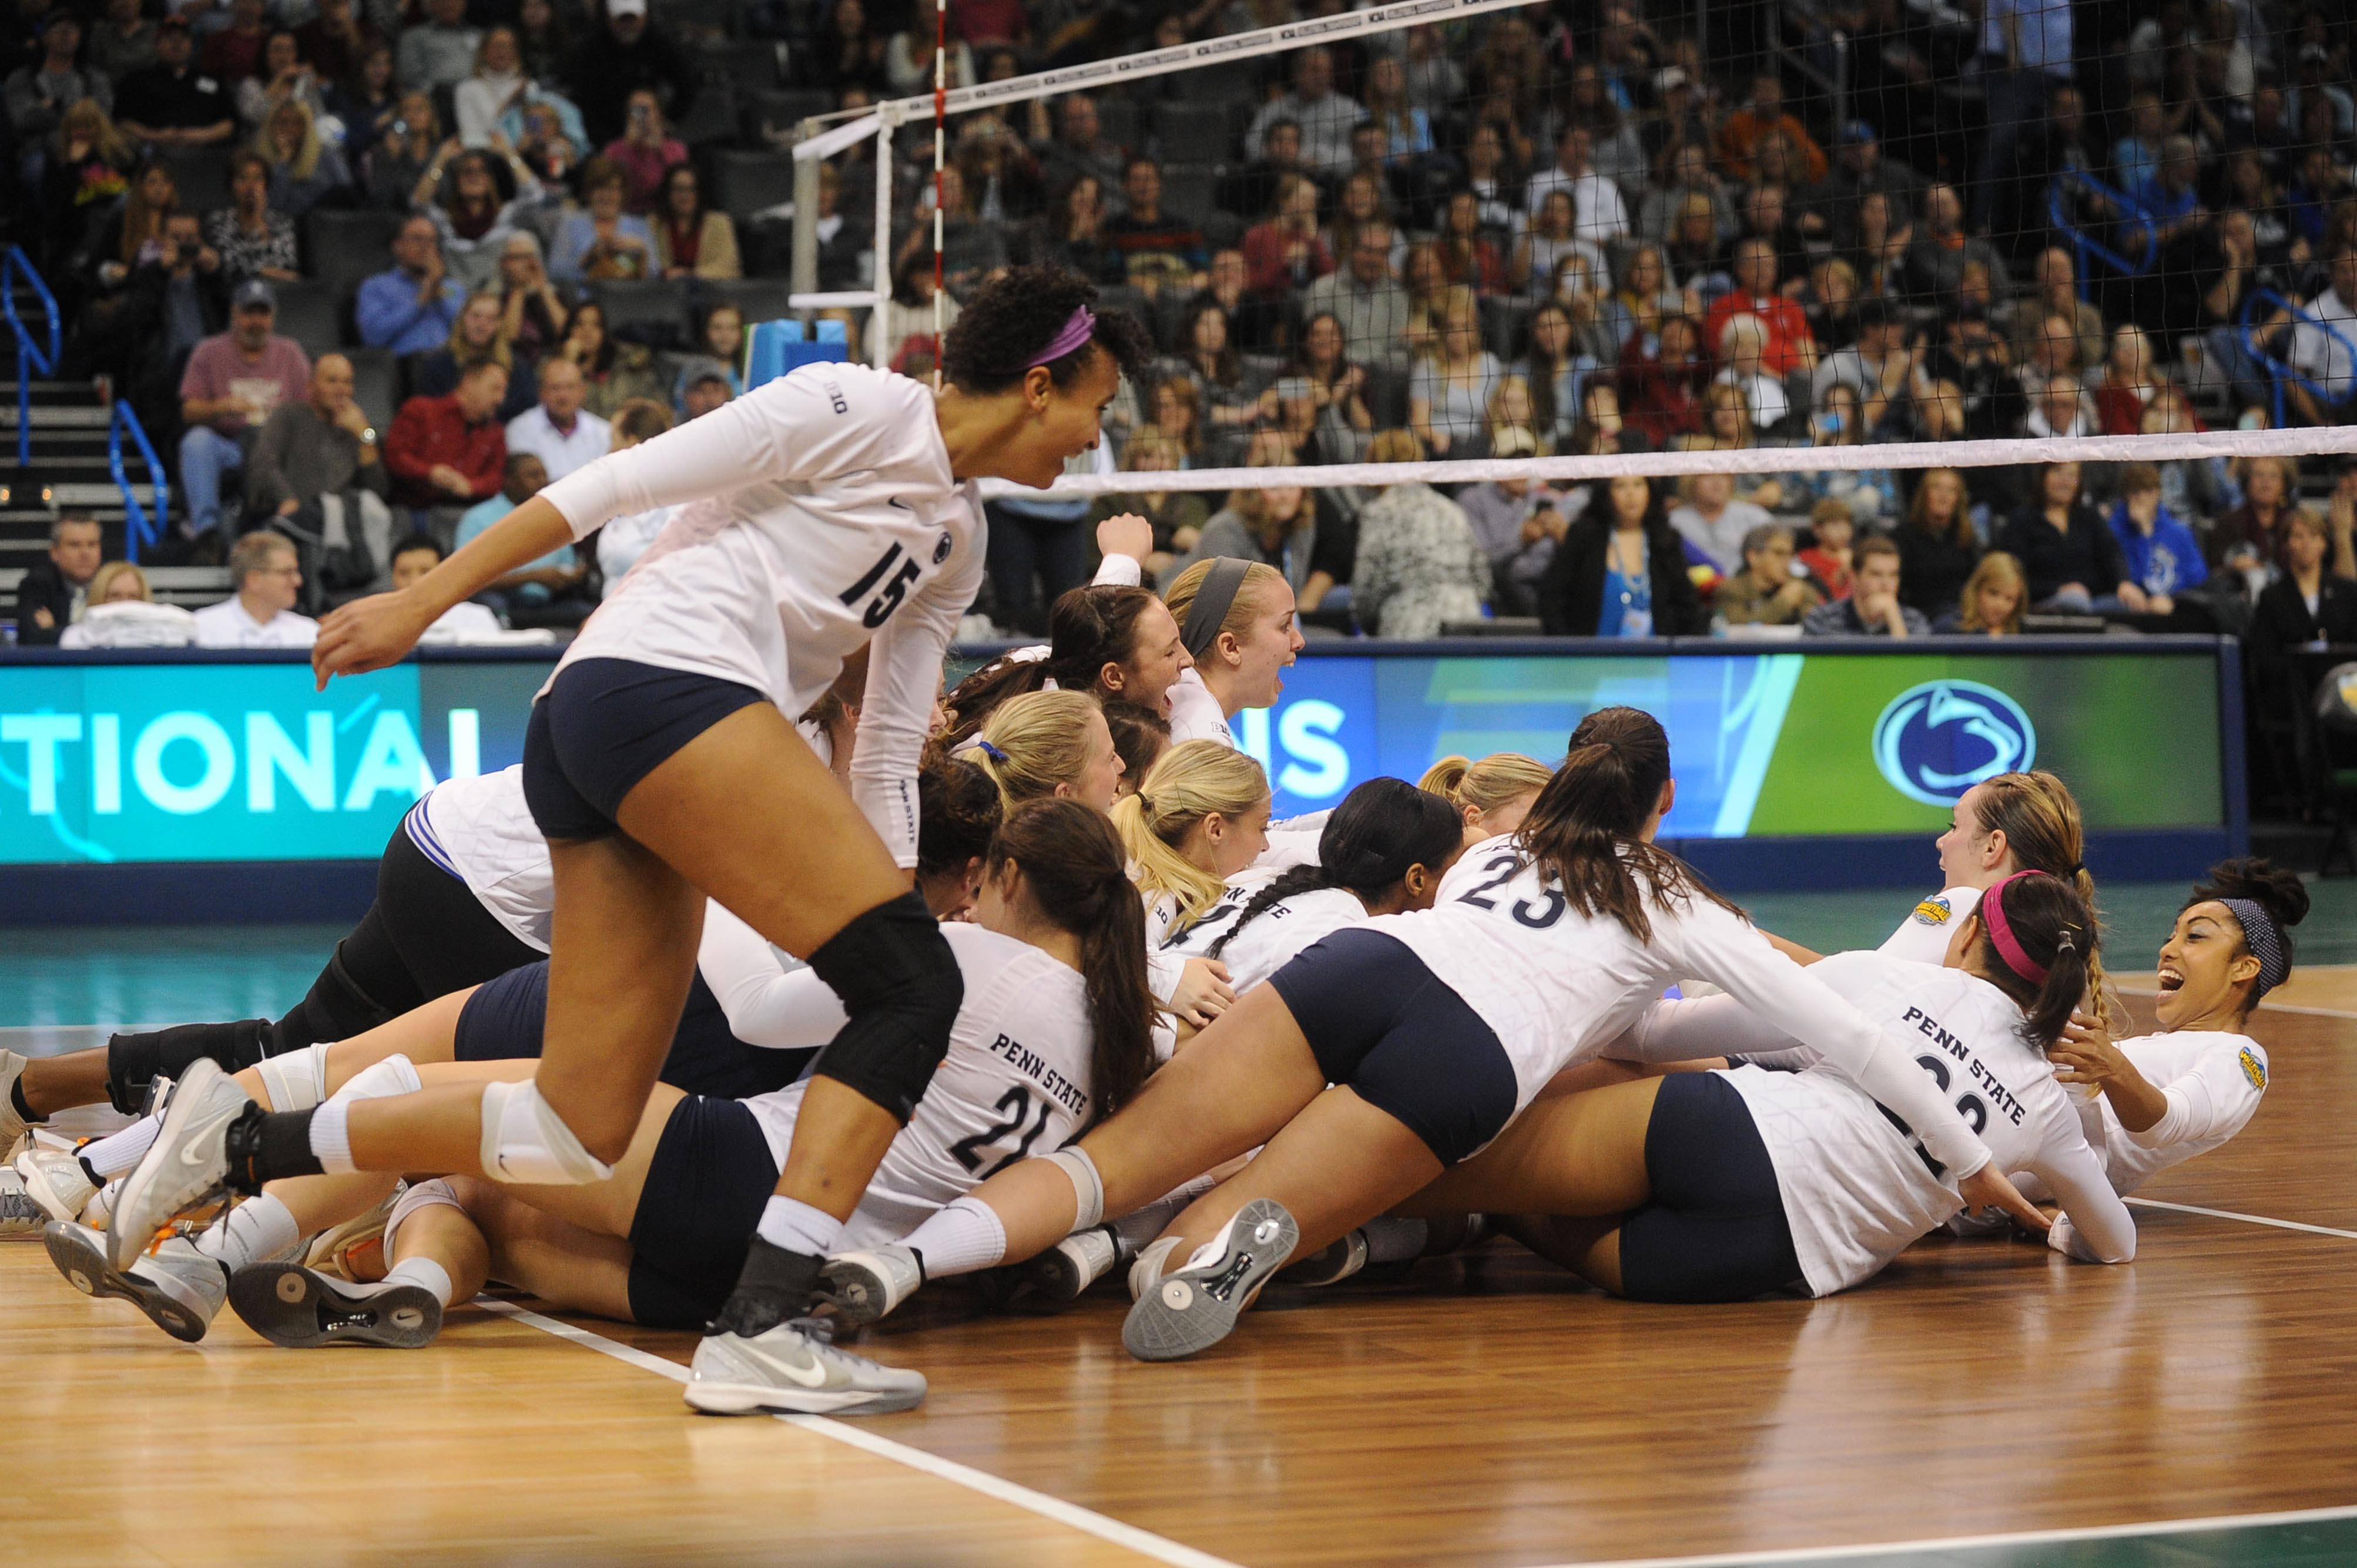 NCAA Volleyball: Women's Volleyball Championship-BYU vs Penn State